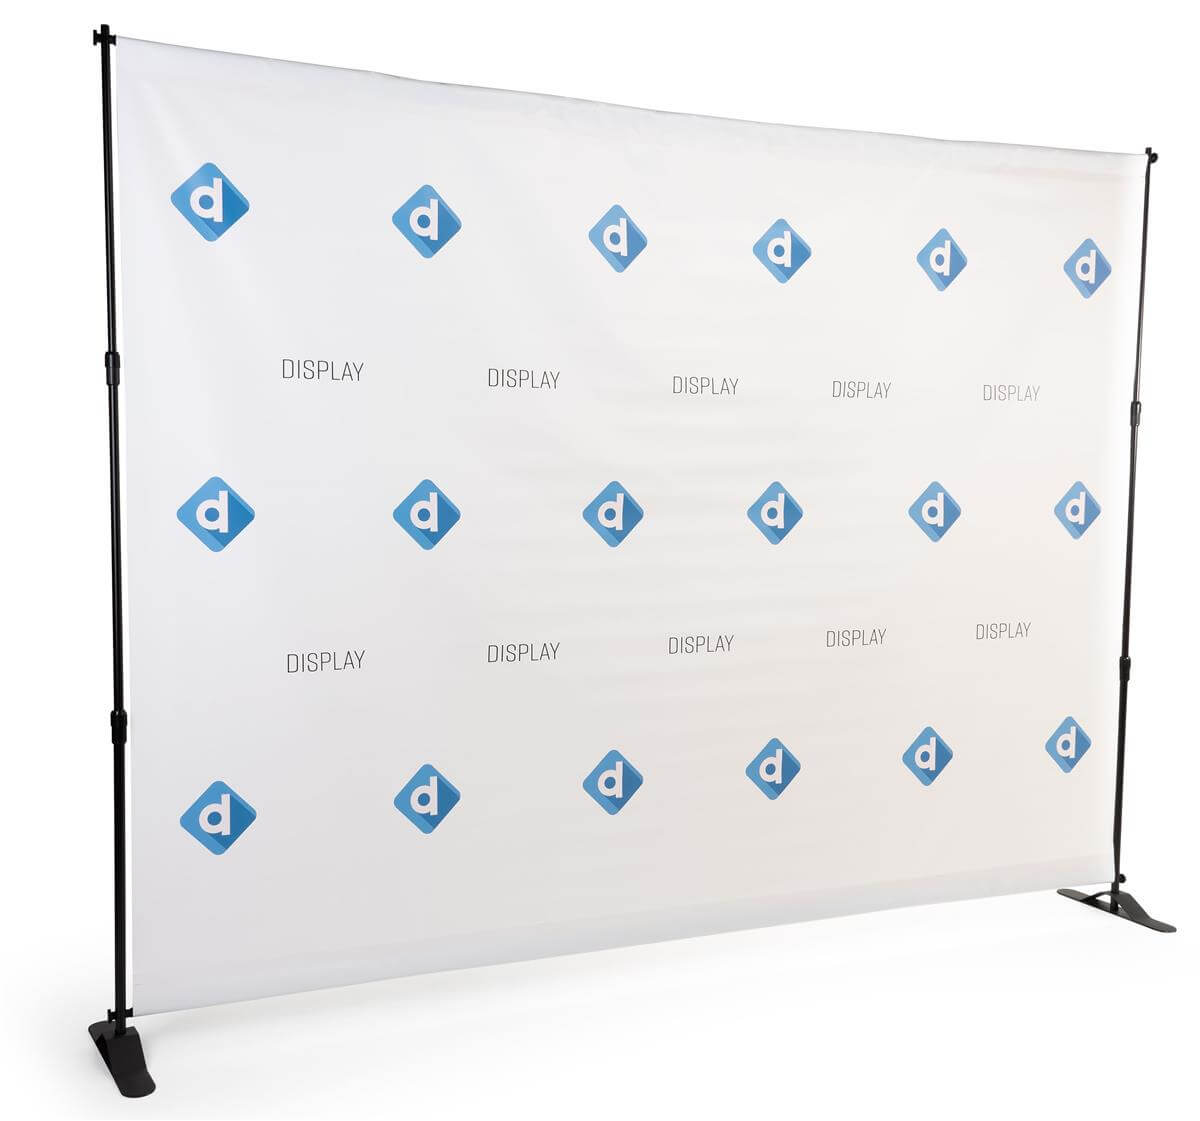 032 Gr8Sap Ra1 Zoom Step And Repeat Banner Template With Step And Repeat Banner Template